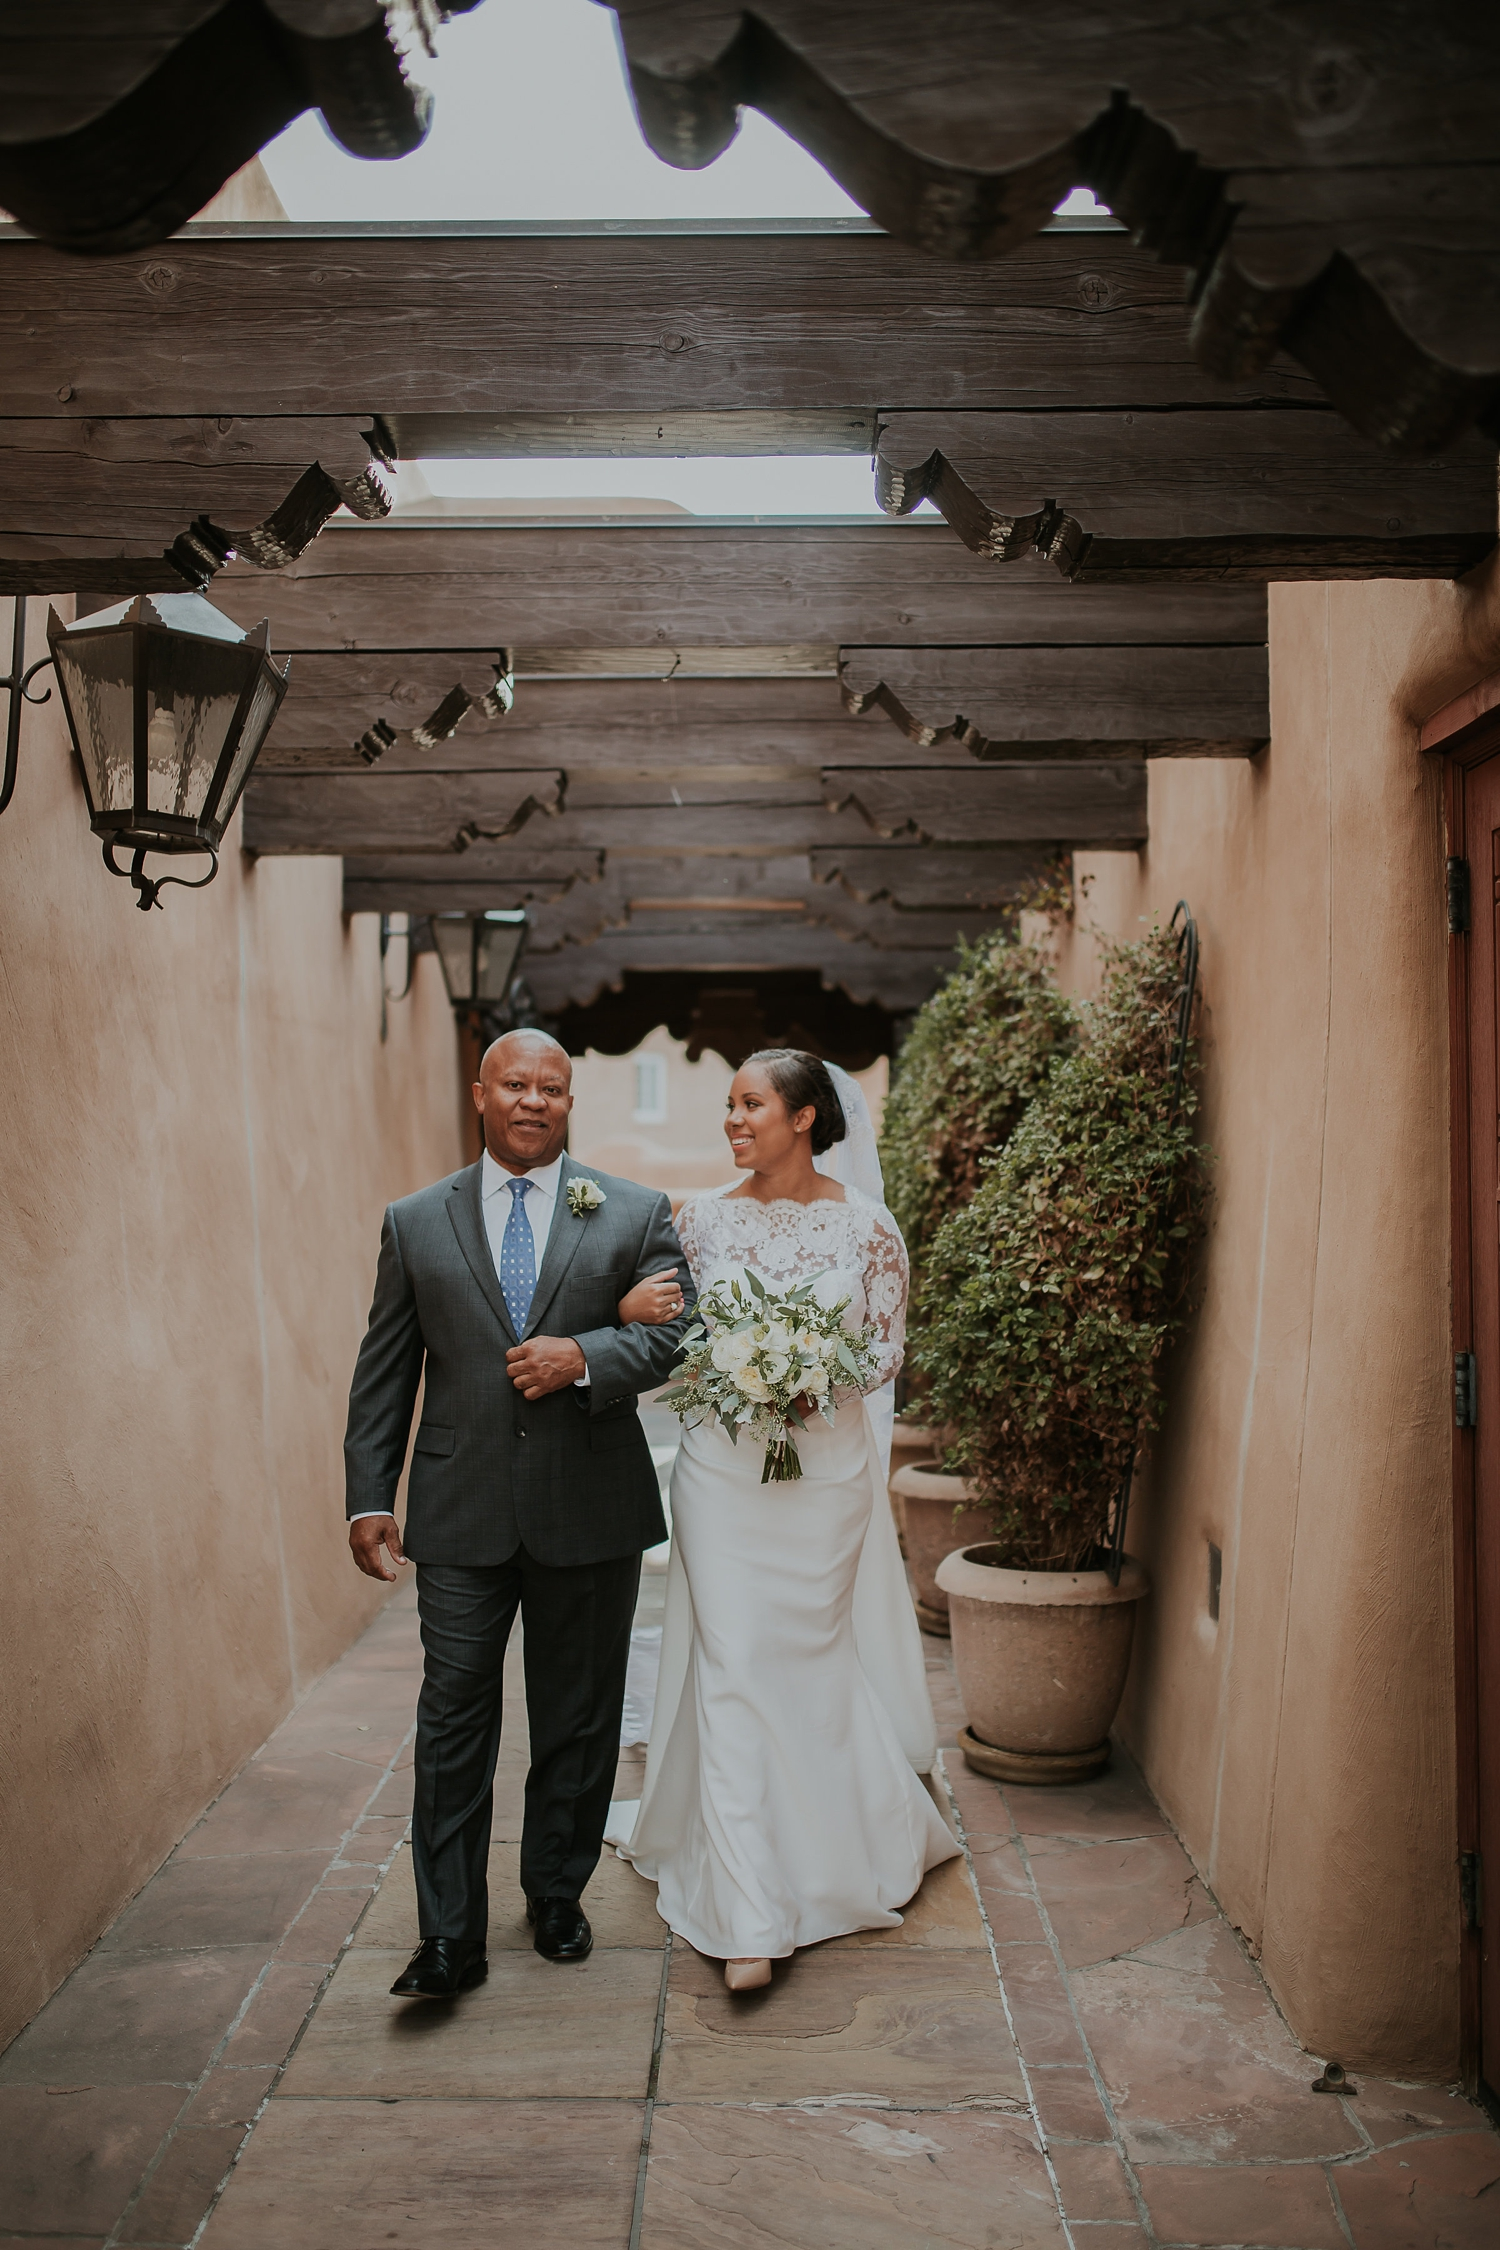 Alicia+lucia+photography+-+albuquerque+wedding+photographer+-+santa+fe+wedding+photography+-+new+mexico+wedding+photographer+-+new+mexico+engagement+-+la+fonda+new+mexico+wedding+-+la+fonda+fall+wedding_0040.jpg